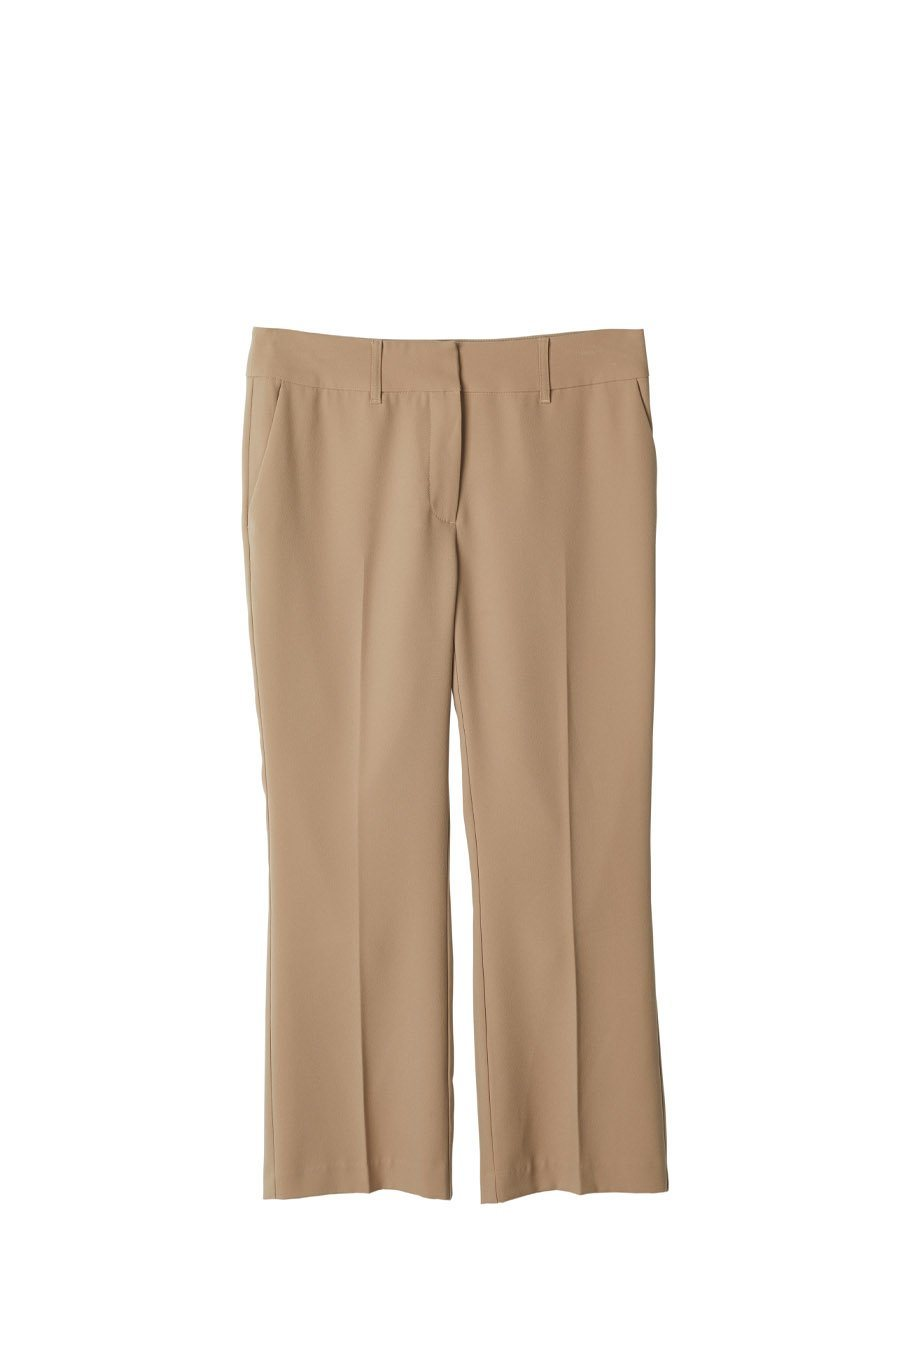 BRYDGES TROUSERS - BEIGE Trousers Stylein